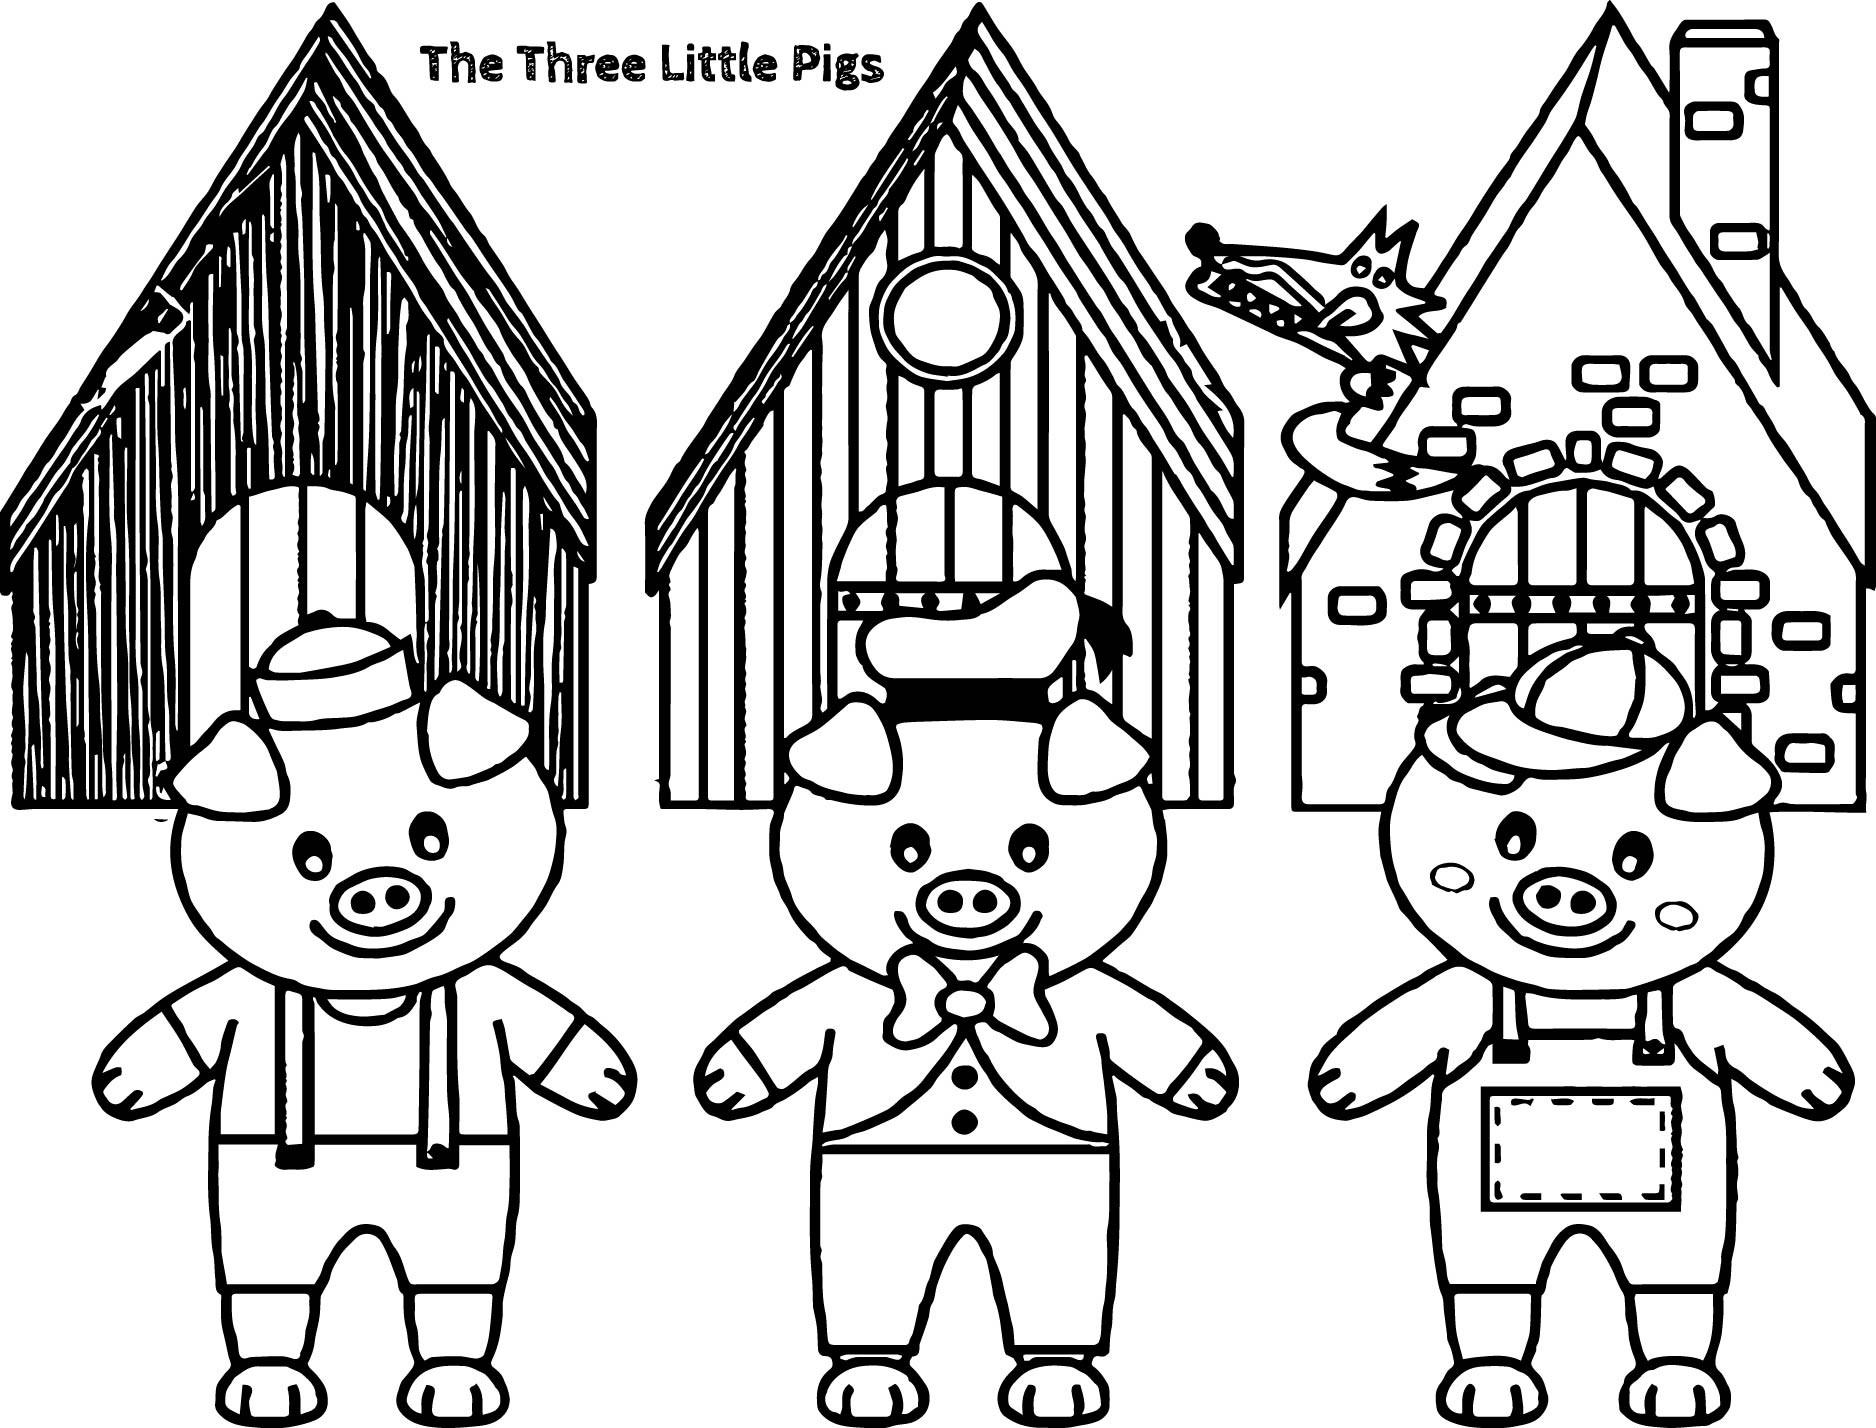 3 little pigs coloring page three little pigs coloring pages for childrens printable page little 3 coloring pigs